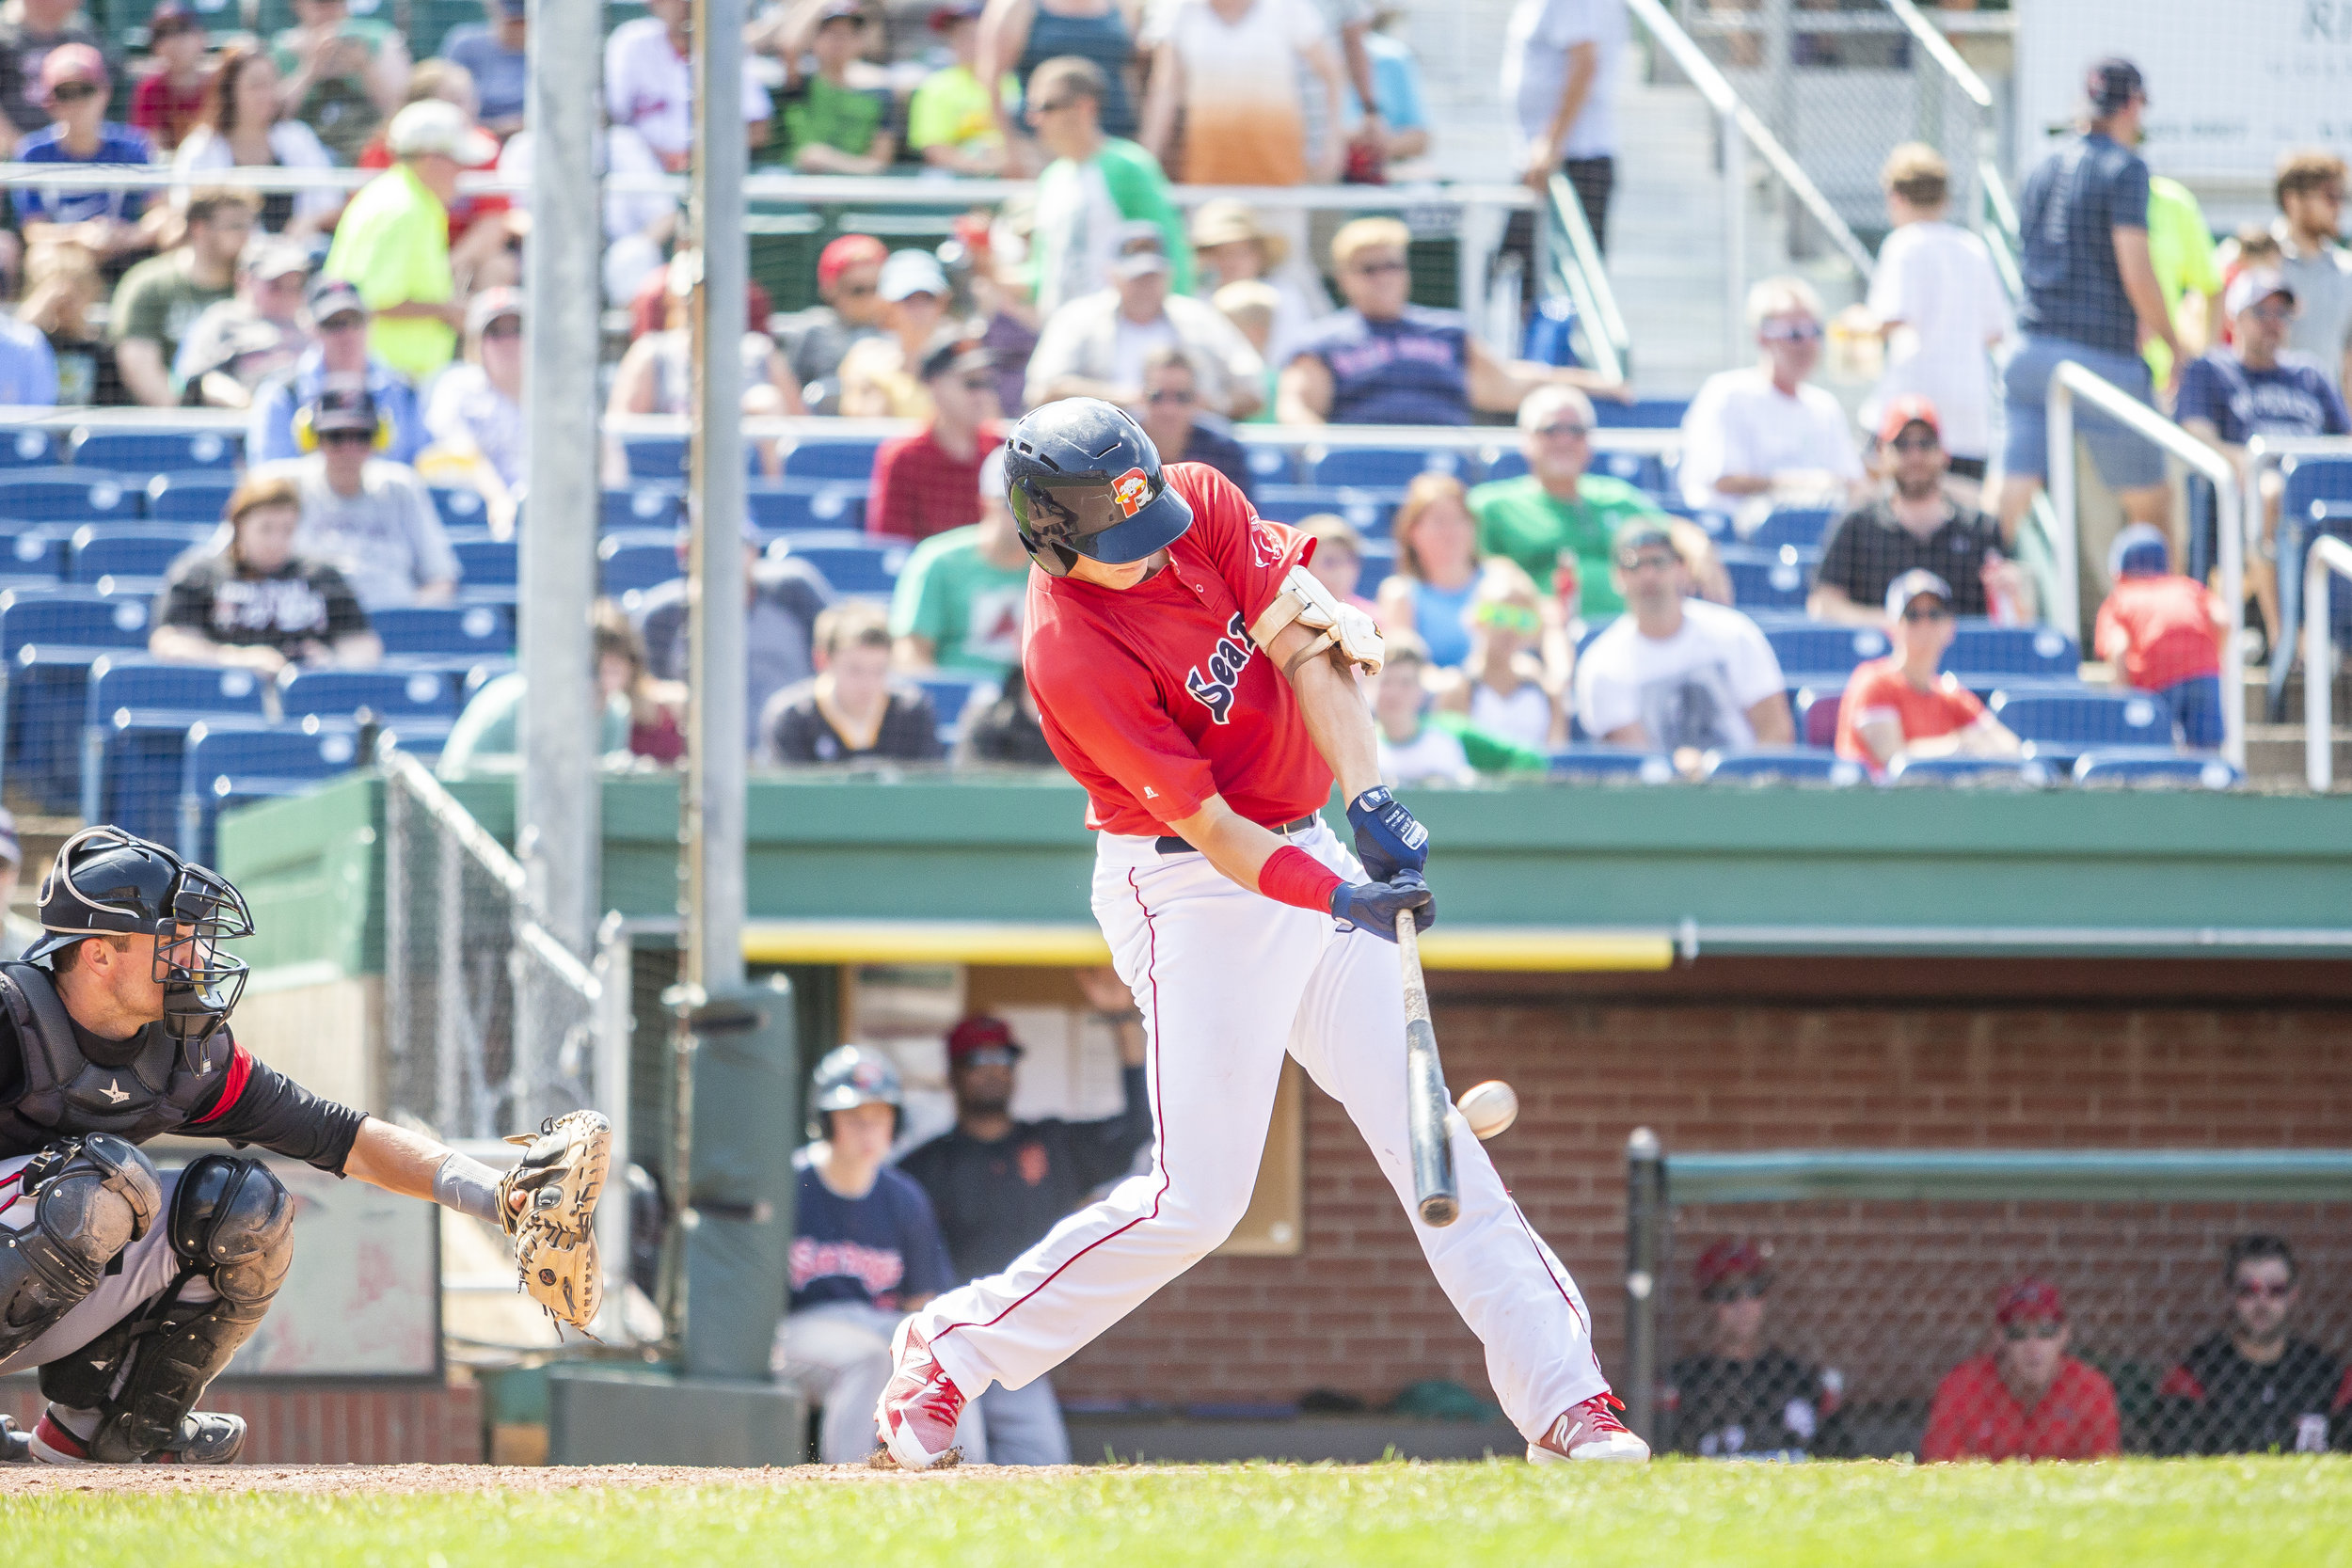 PORTLAND, ME - AUGUST 05:  Bobby Dalbec #29 of the Portland Sea Dogs hits his second home run in a game against the Richmond Flying Squirrels on August 5, 2018, in Portland, ME at Hadlock Field. (Photo by Zachary Roy/Getty Images)